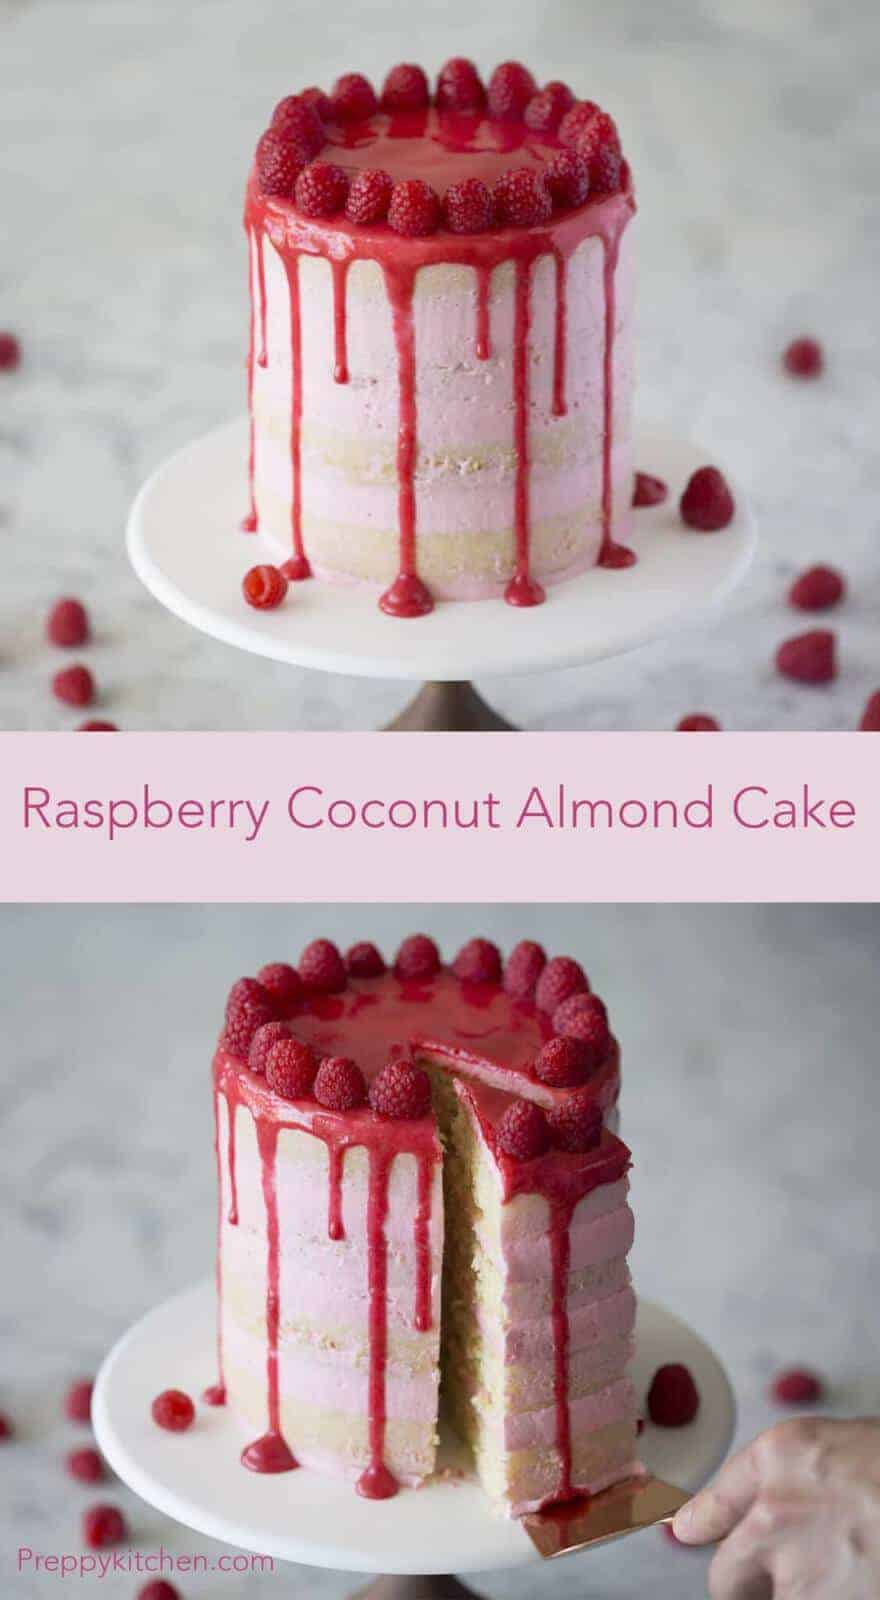 Raspberries aren't the surprise in this cake! The cake itself has coconut, vanilla and almonds; perfectly complementing the zesty buttercream.  Click over for full recipe and video.